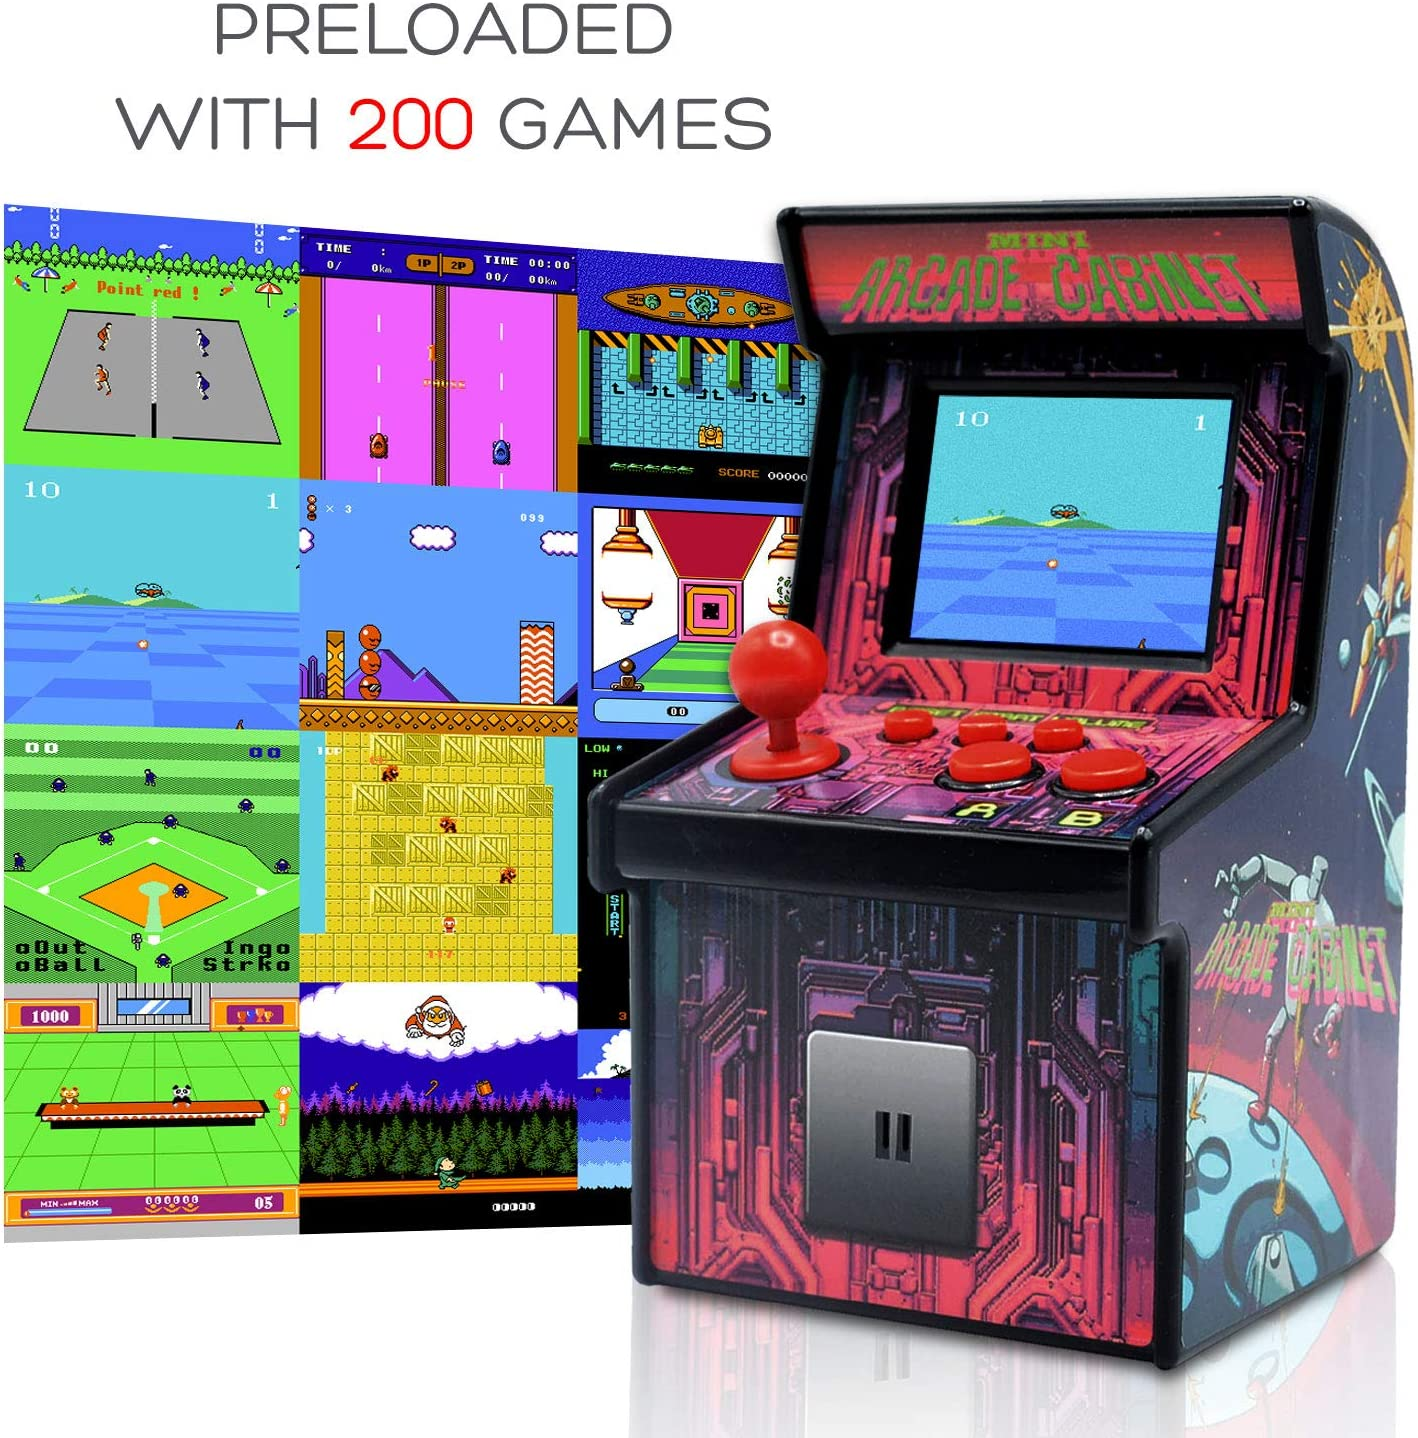 Funderdome Retro Mini Arcade Game Portable Gaming Console for Kids with 200 Classic Video Games